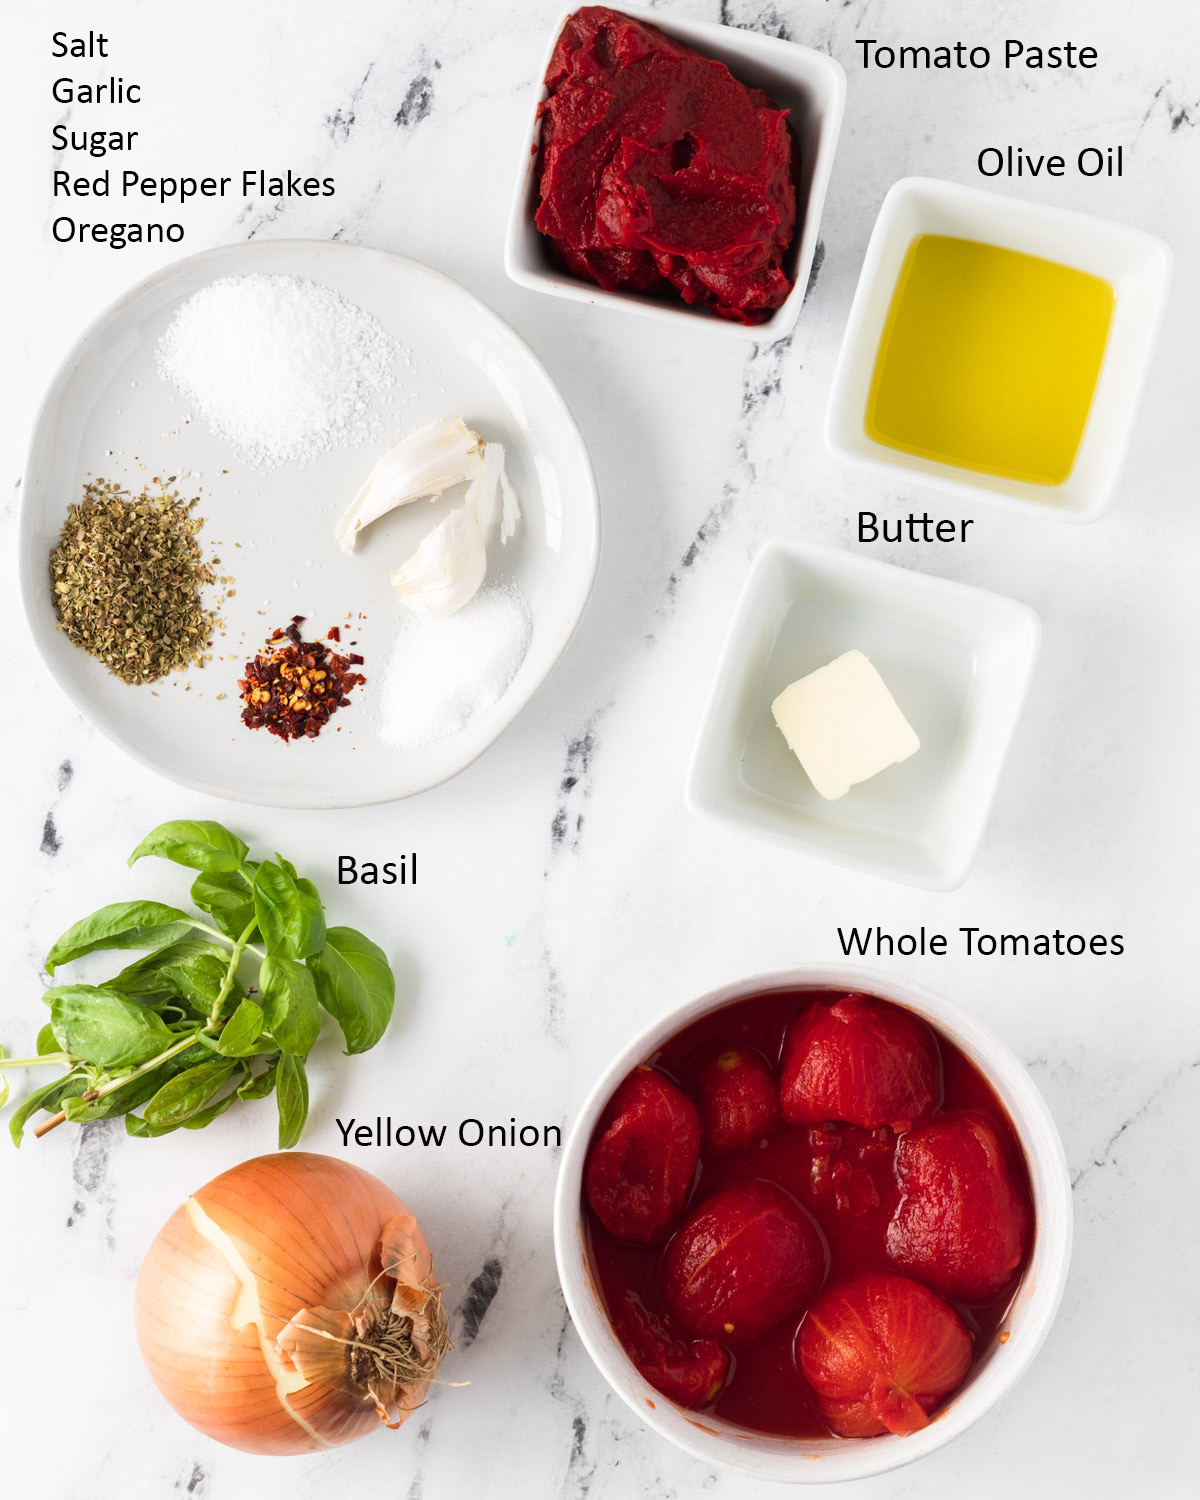 Ingredients for New York-Style Pizza Sauce: Tomato Paste, olive oil, butter, whole tomatoes, basil, yellow onion, salt, garlic, sugar, red pepper flakes, and Oregano.